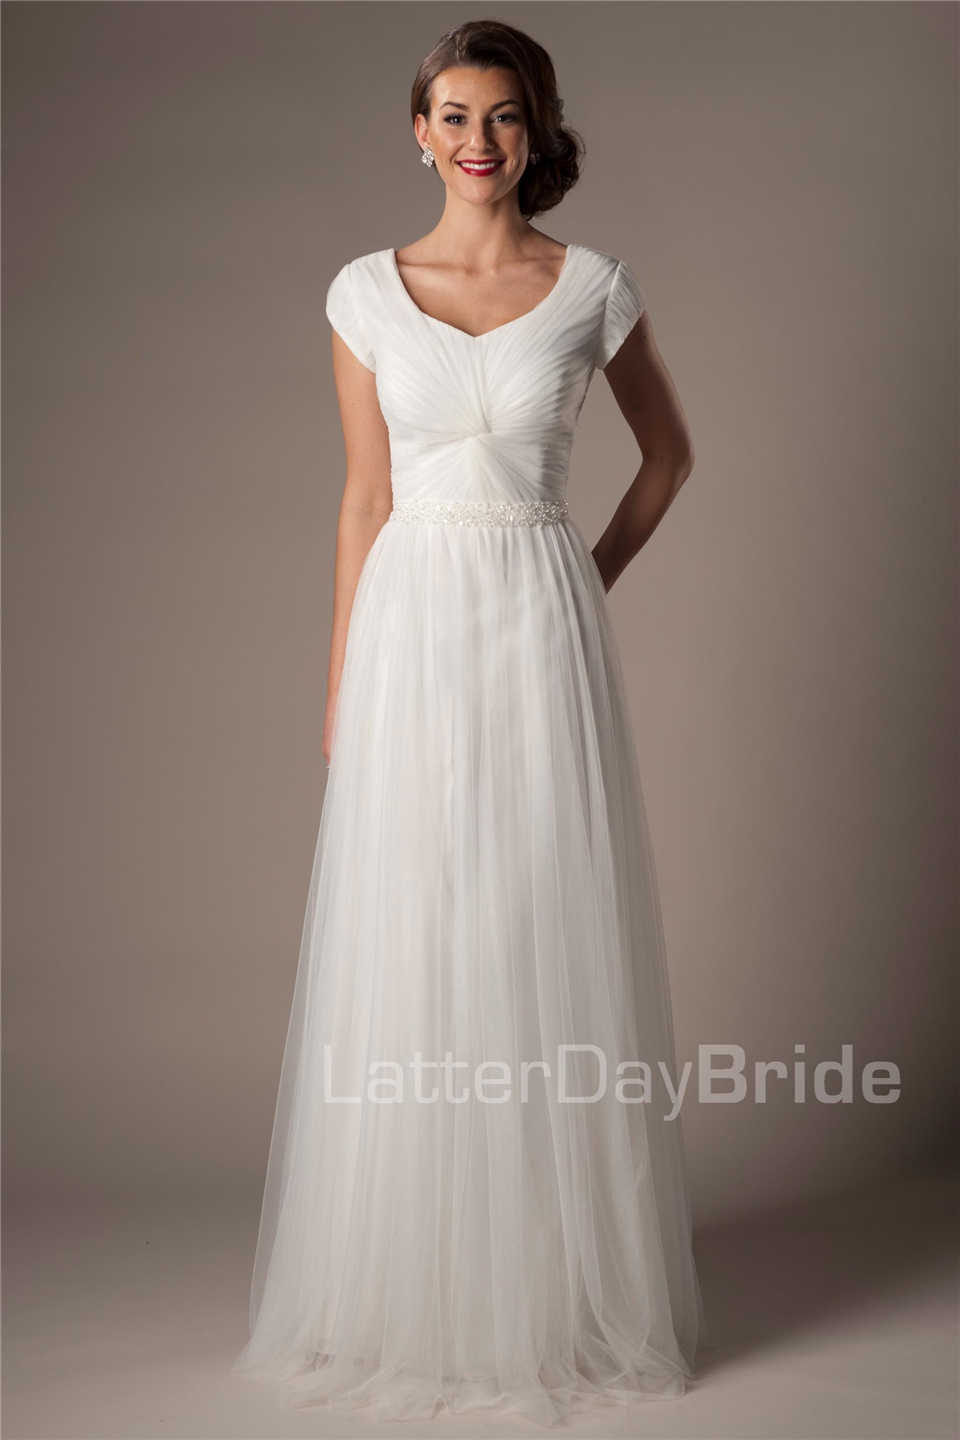 Ivory Tulle Modest Wedding Dresses With Cap Sleeves Beaded Belt Pleats Mature Women Informal Beach Wedding Gowns Country Western Modest Wedding Dress Wedding Dresswestern Wedding Dresses Aliexpress,Casual Simple Beach Wedding Dresses